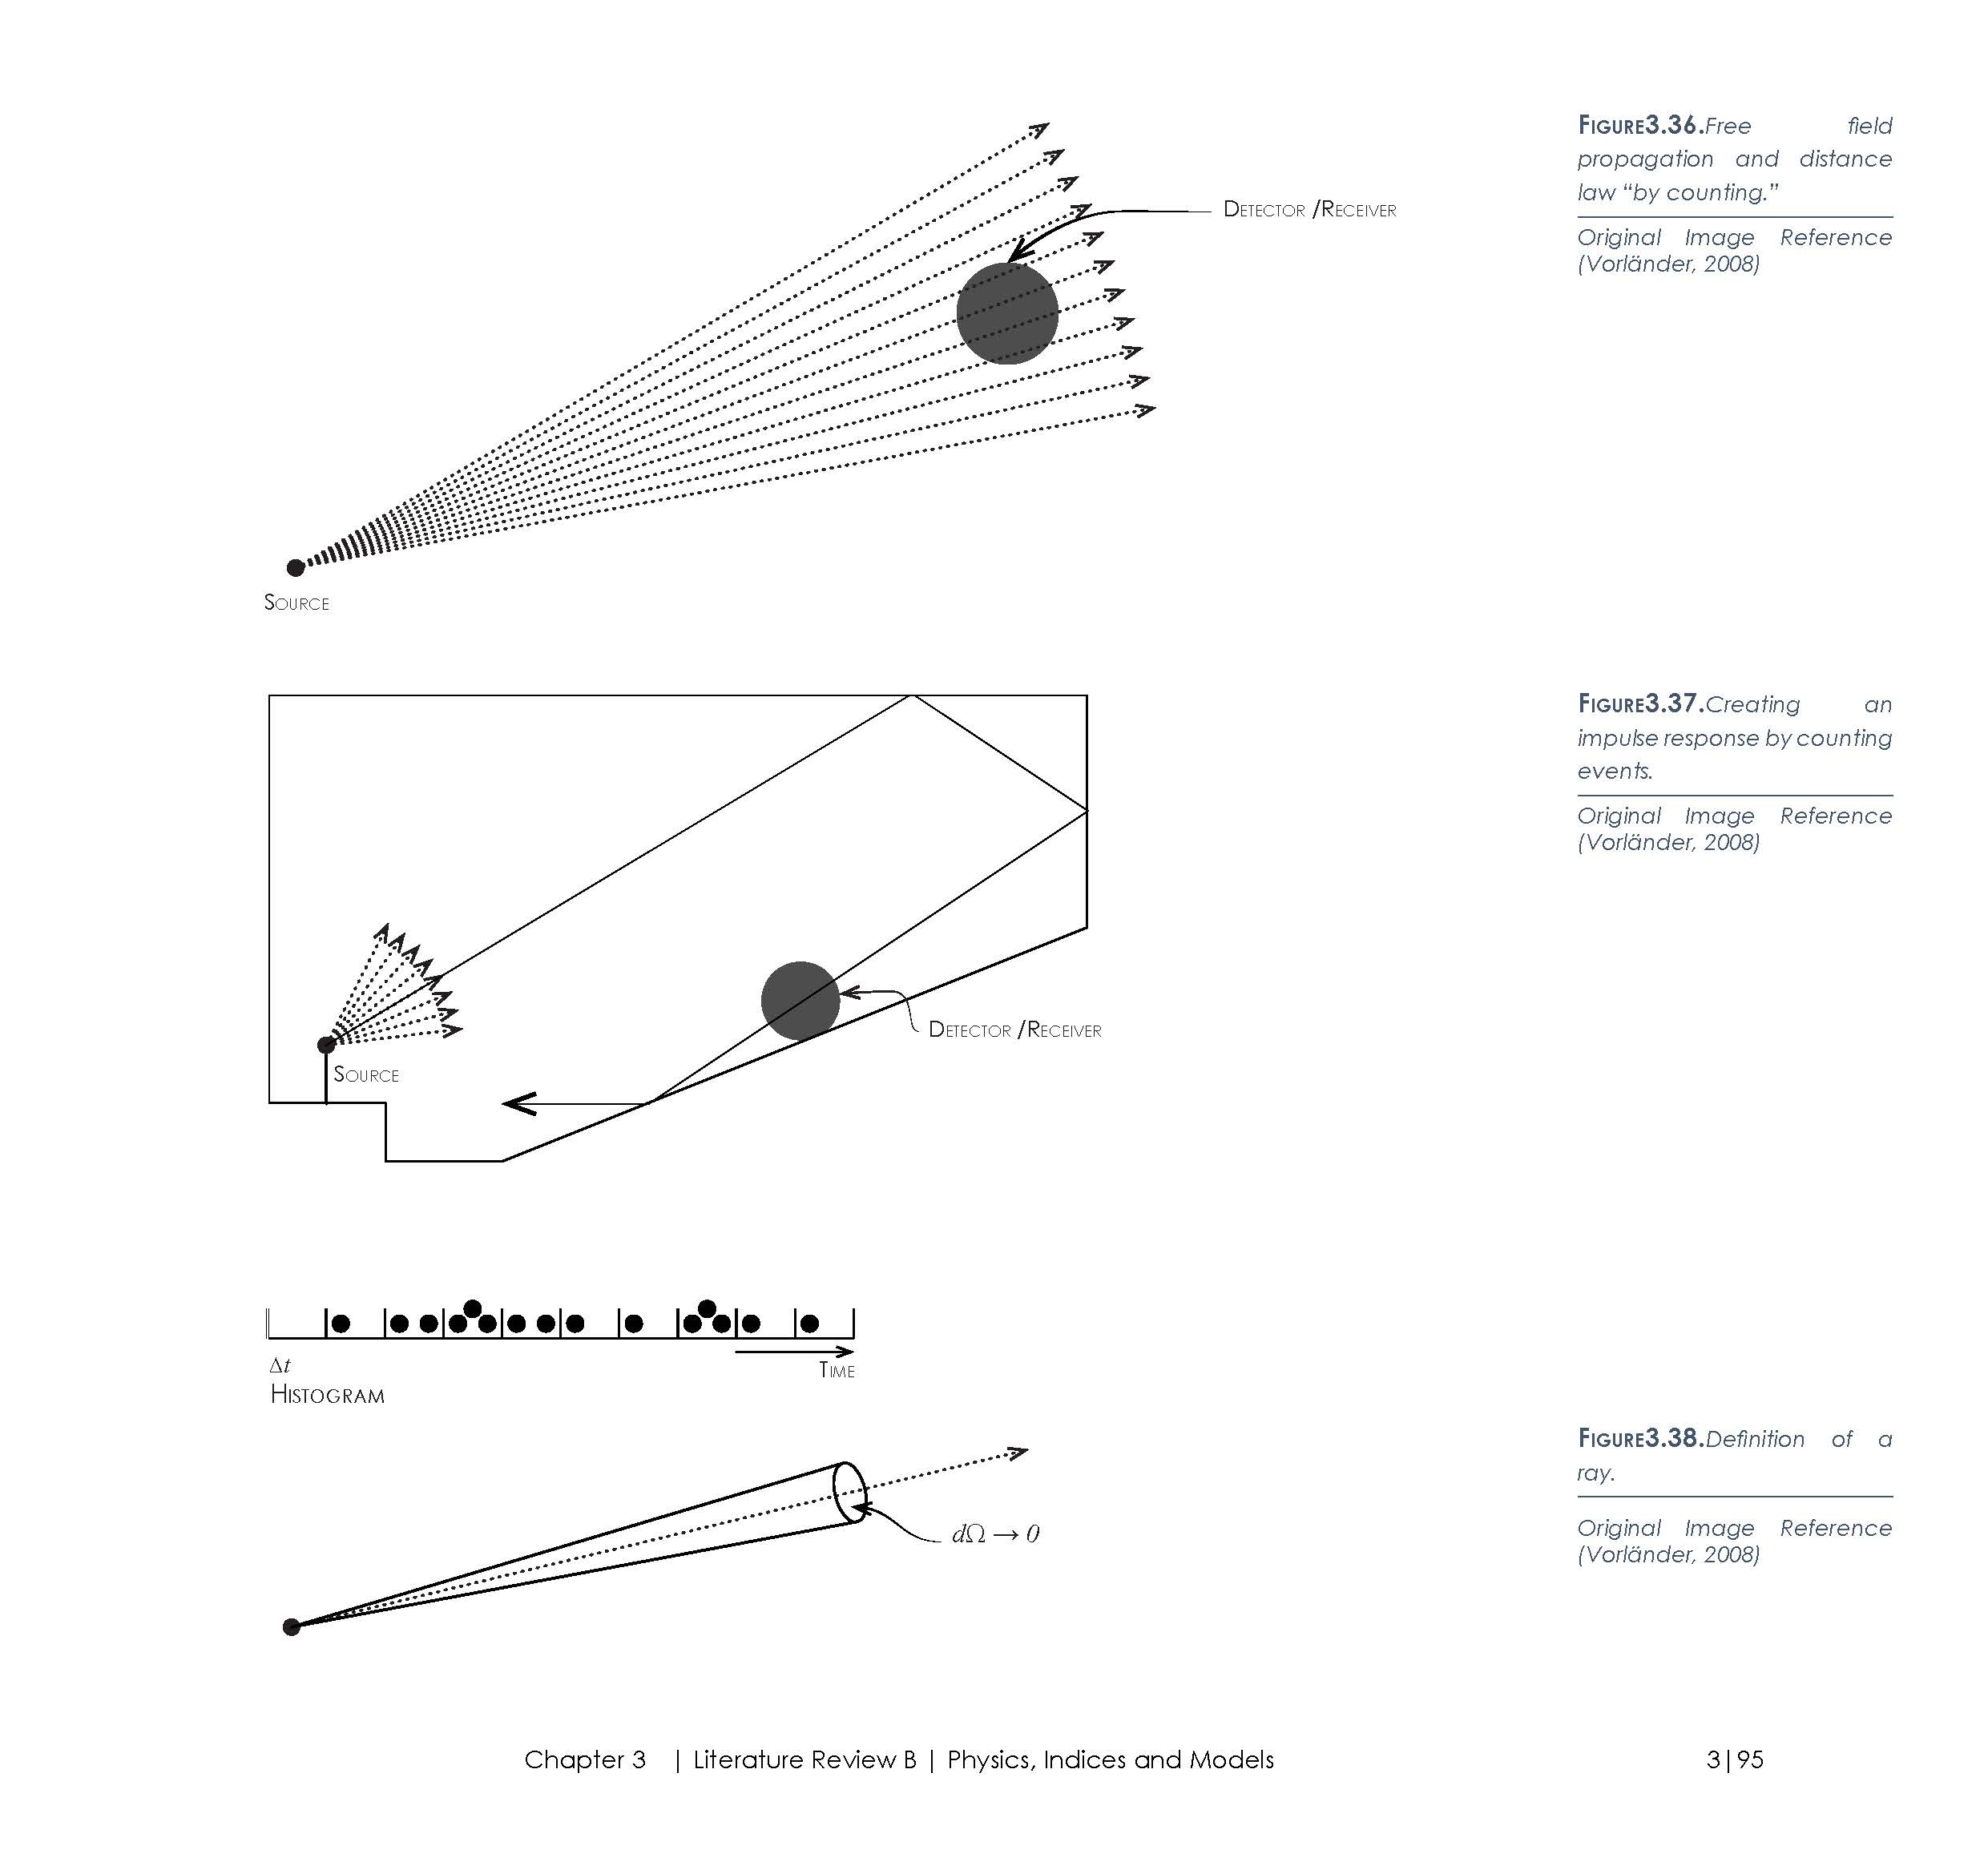 16.03.03_Thesis_01_Interactive_Page_131.jpg